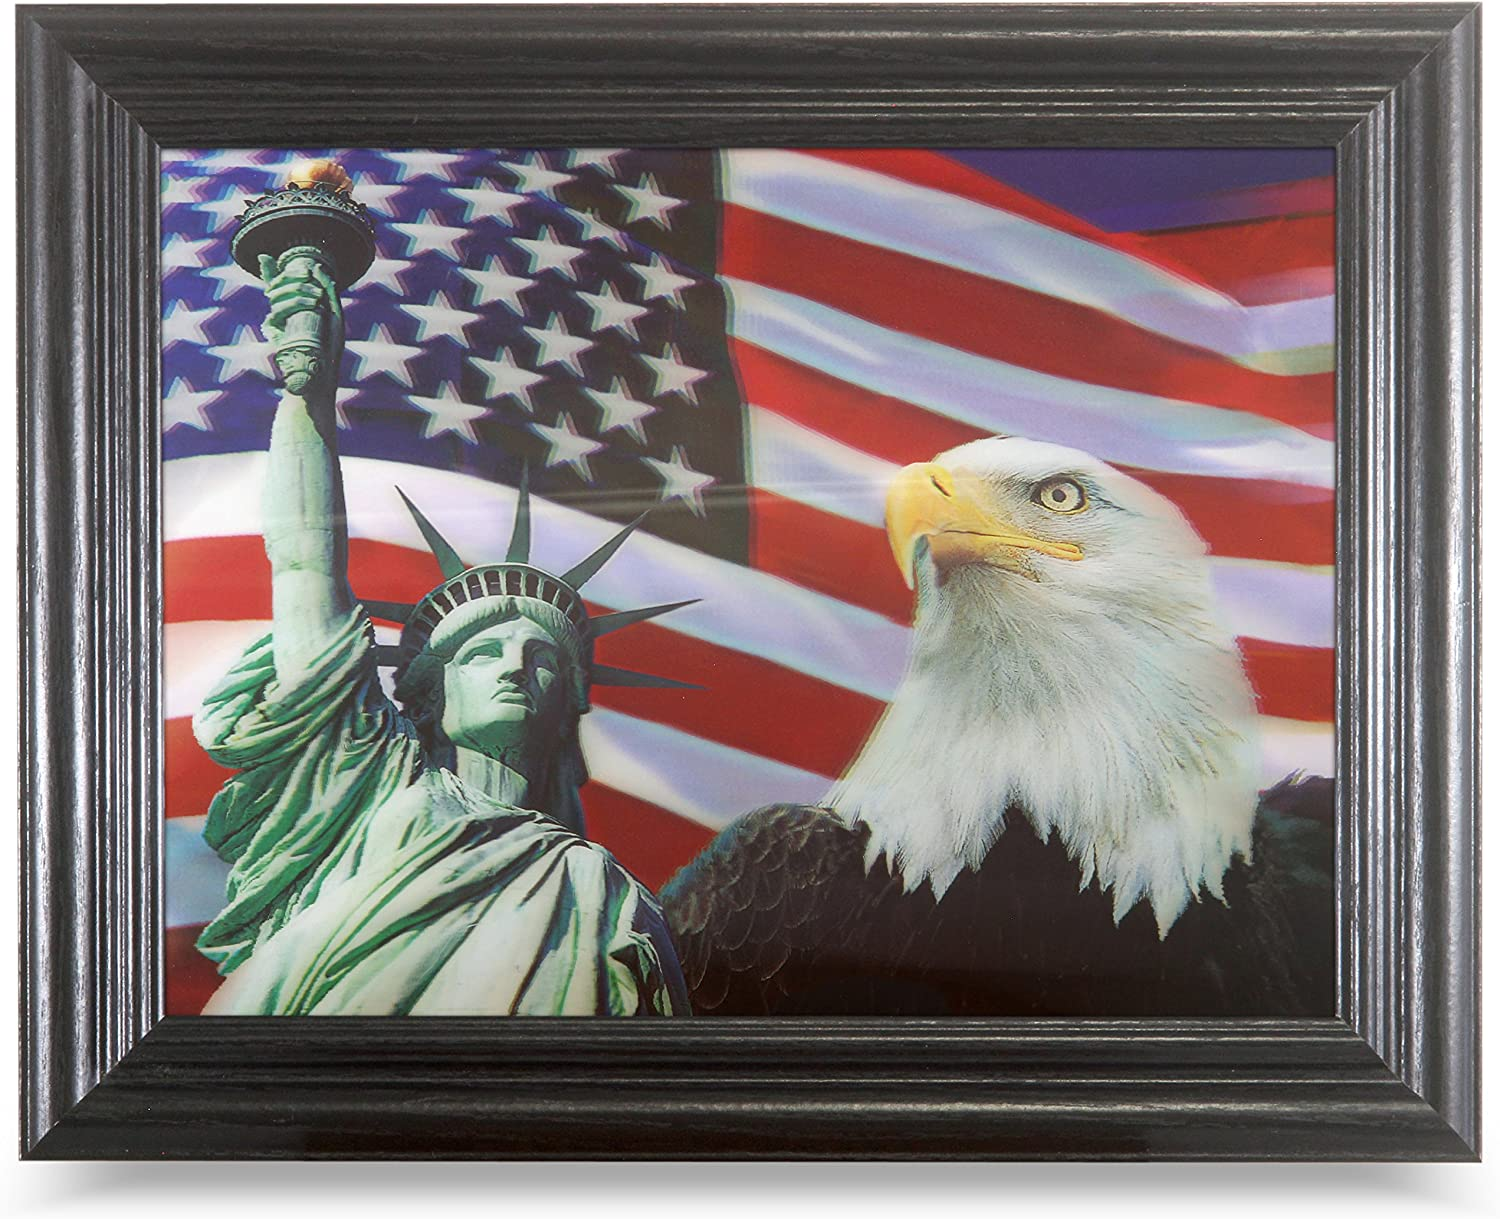 Those Flipping Pictures American Pride 3D Framed Wall Art-Lenticular Technology Causes The Artwork to Have Depth and Move-Hologram Style Images-Holographic Optical Illusions